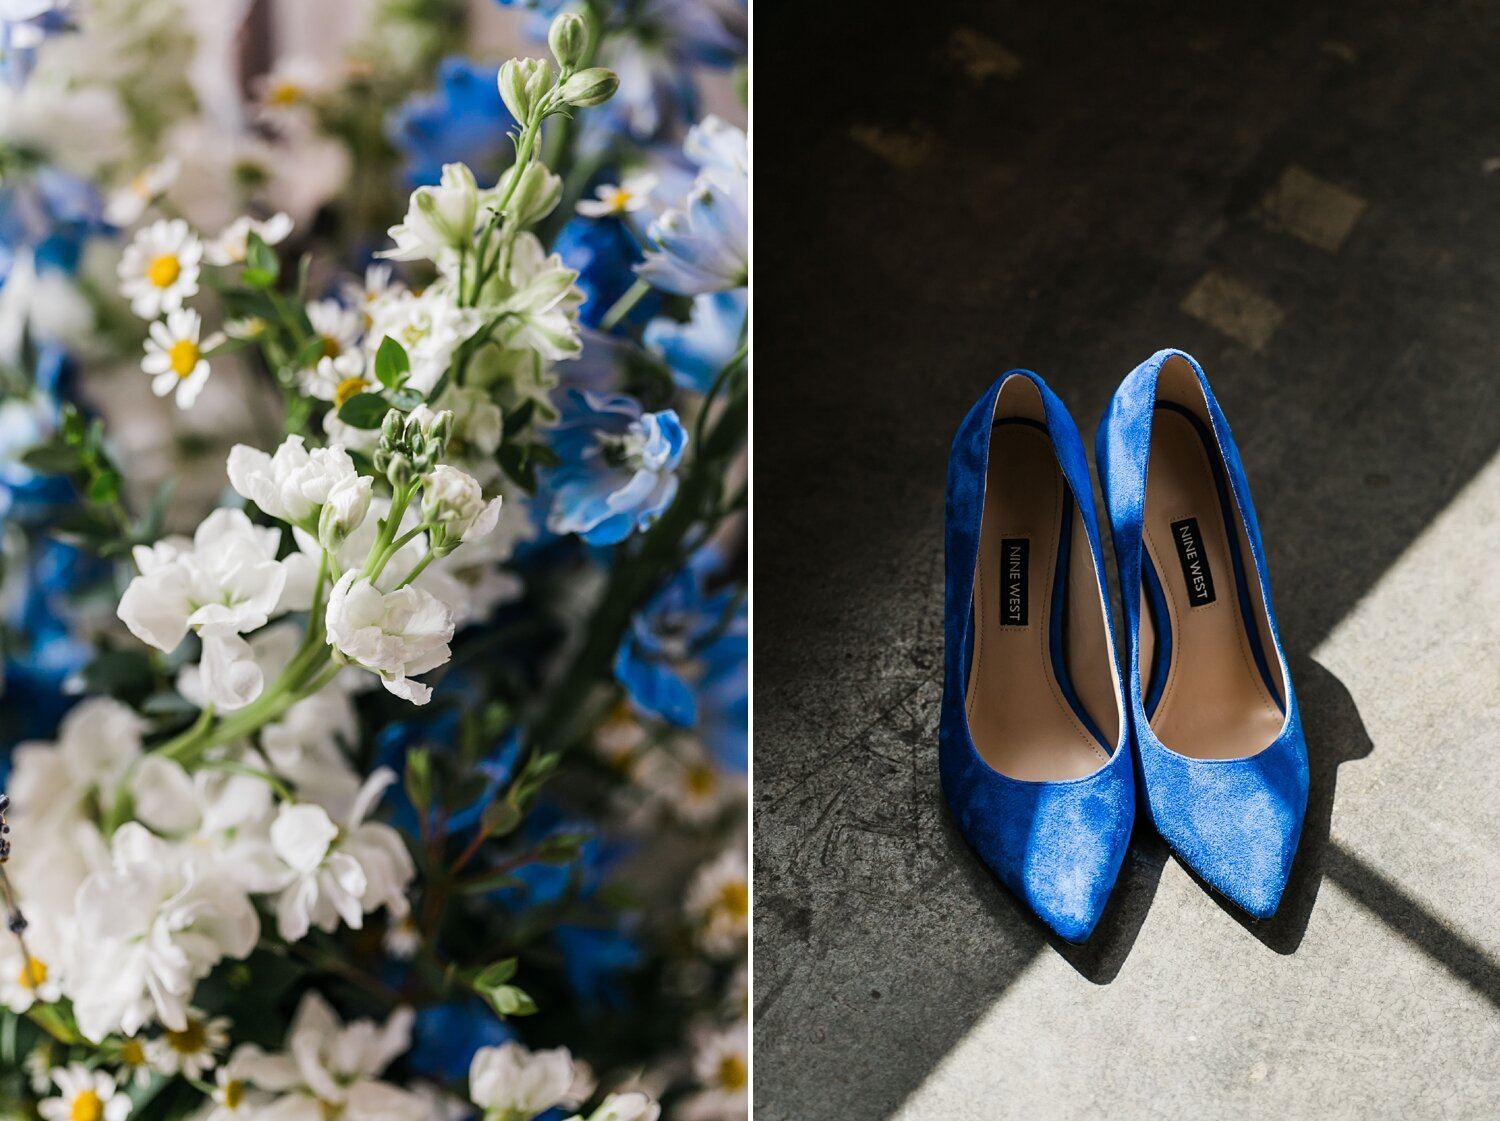 blue shoes and matching flowers wedding day